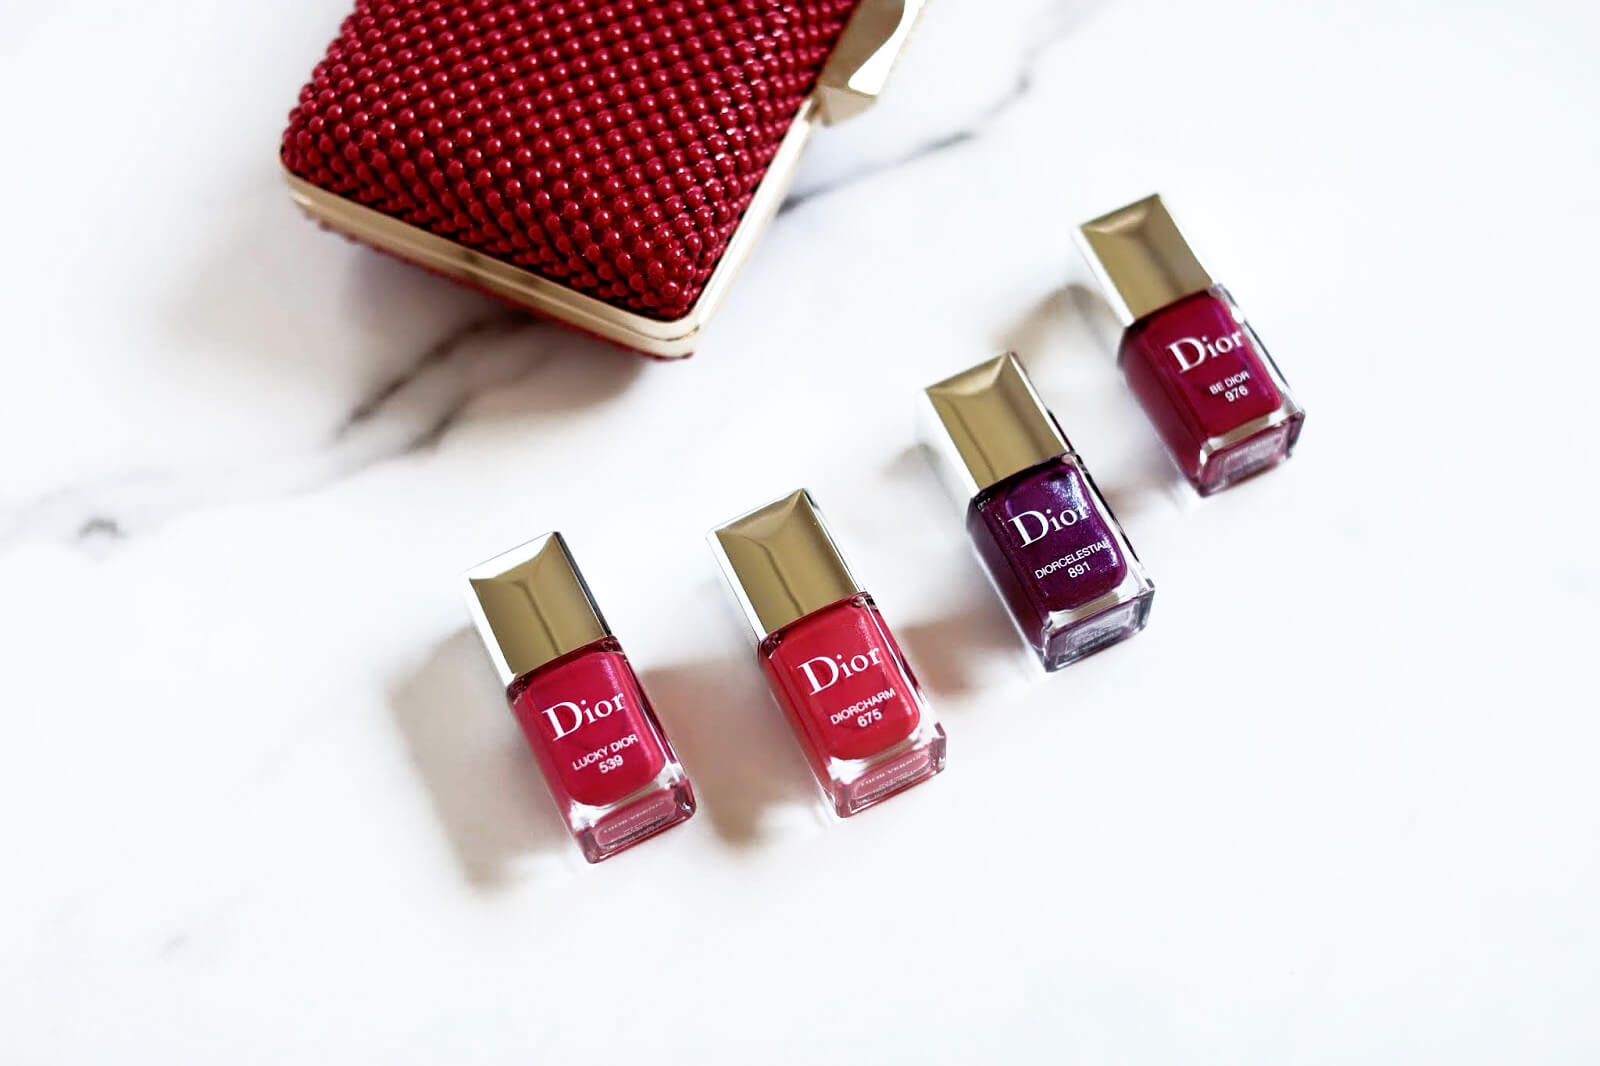 dior-vernis-printemps-2019-675-diorcharm-891-diorcelestial-539-lucky-dior-976-be-dior-avis-test-swatch-swatches